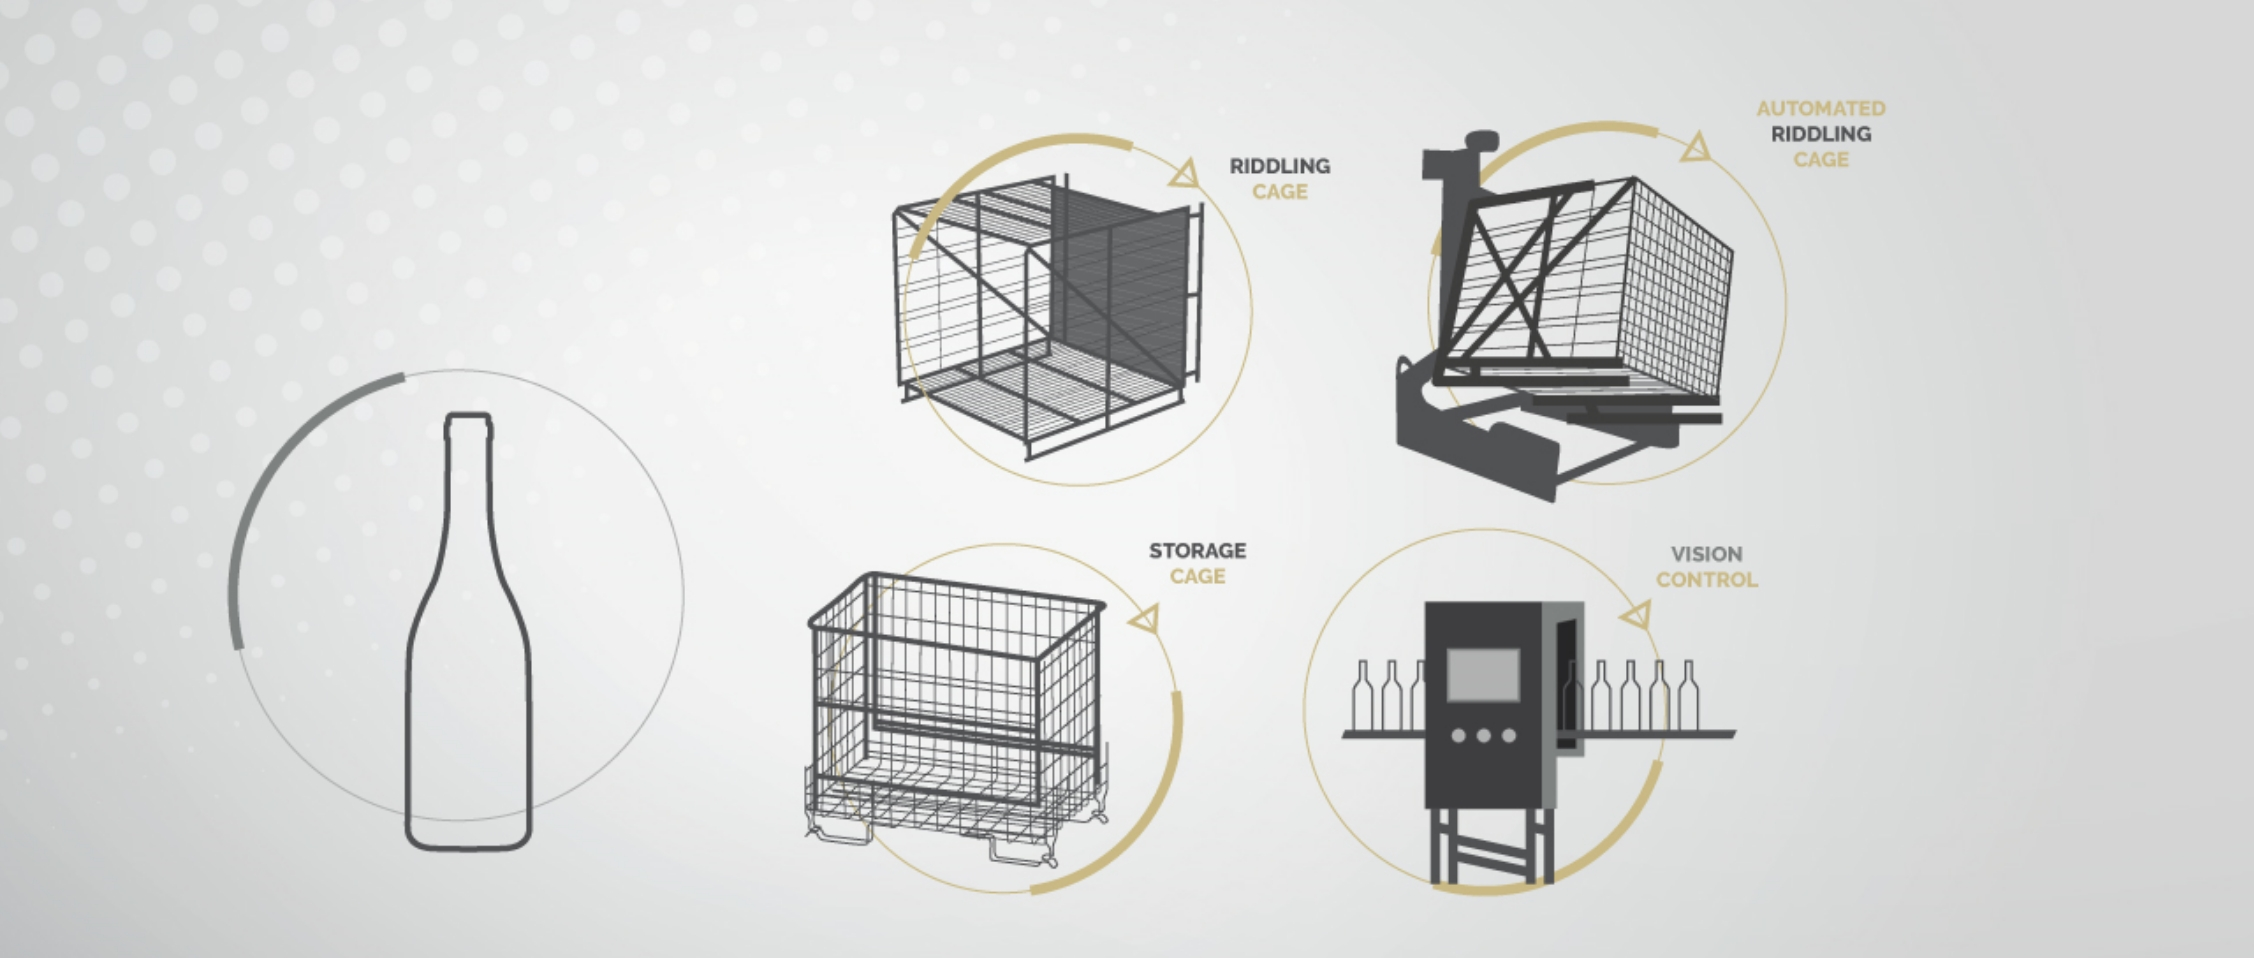 Winemaking, Riddling Cages, cream , foldable container, riddling machines, containers manufacturer, riddling, bottle, champagne, Burgundy, Bordeaux, Alsace, sparkilng solution, riddling, Aryes Vini, Farame, CMP, Fileurope offre globale d'équipements vinicoles